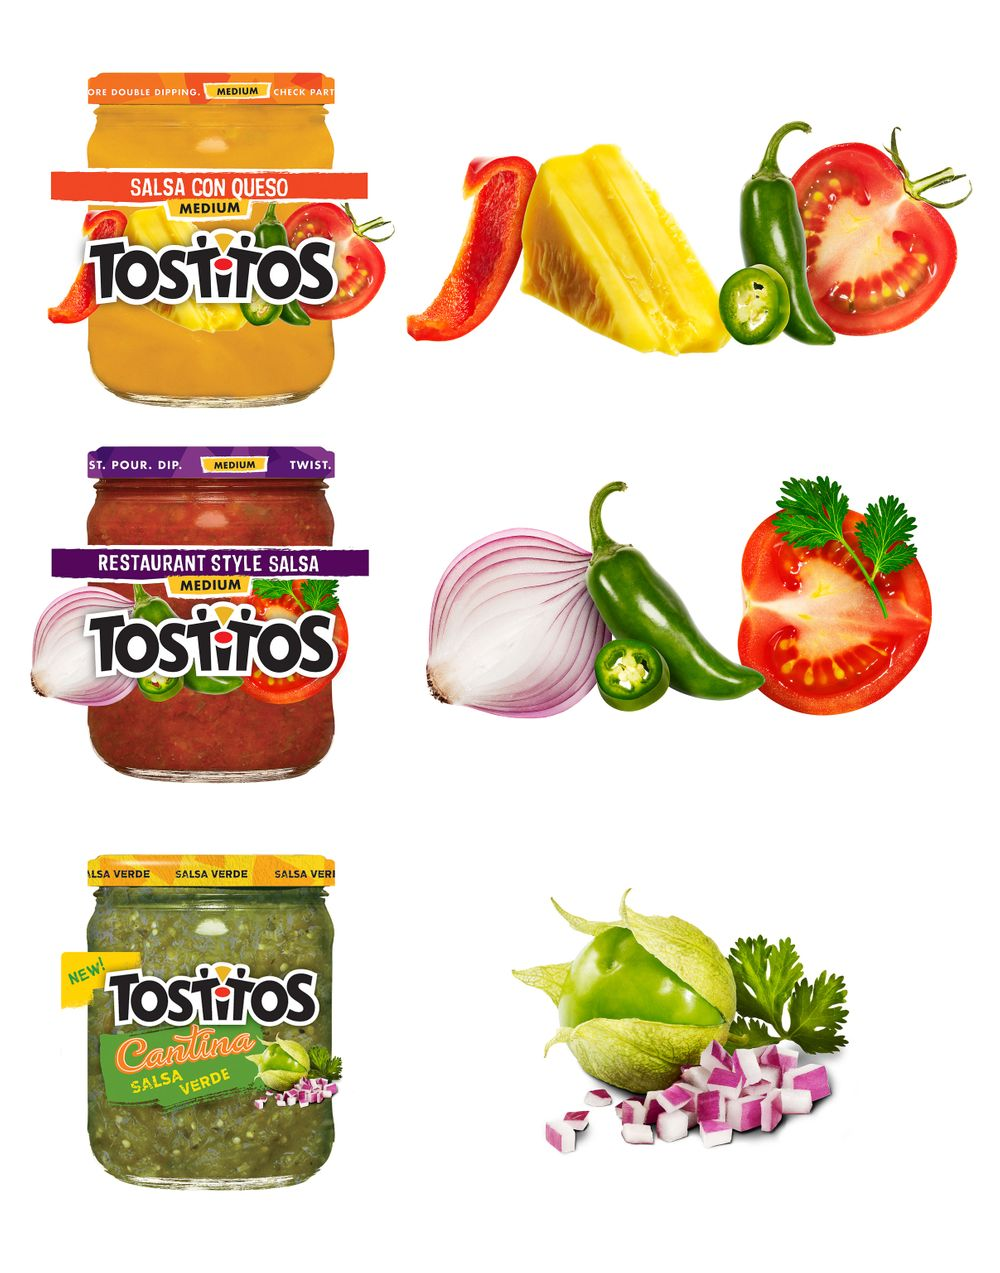 Product Advertising and Packaging